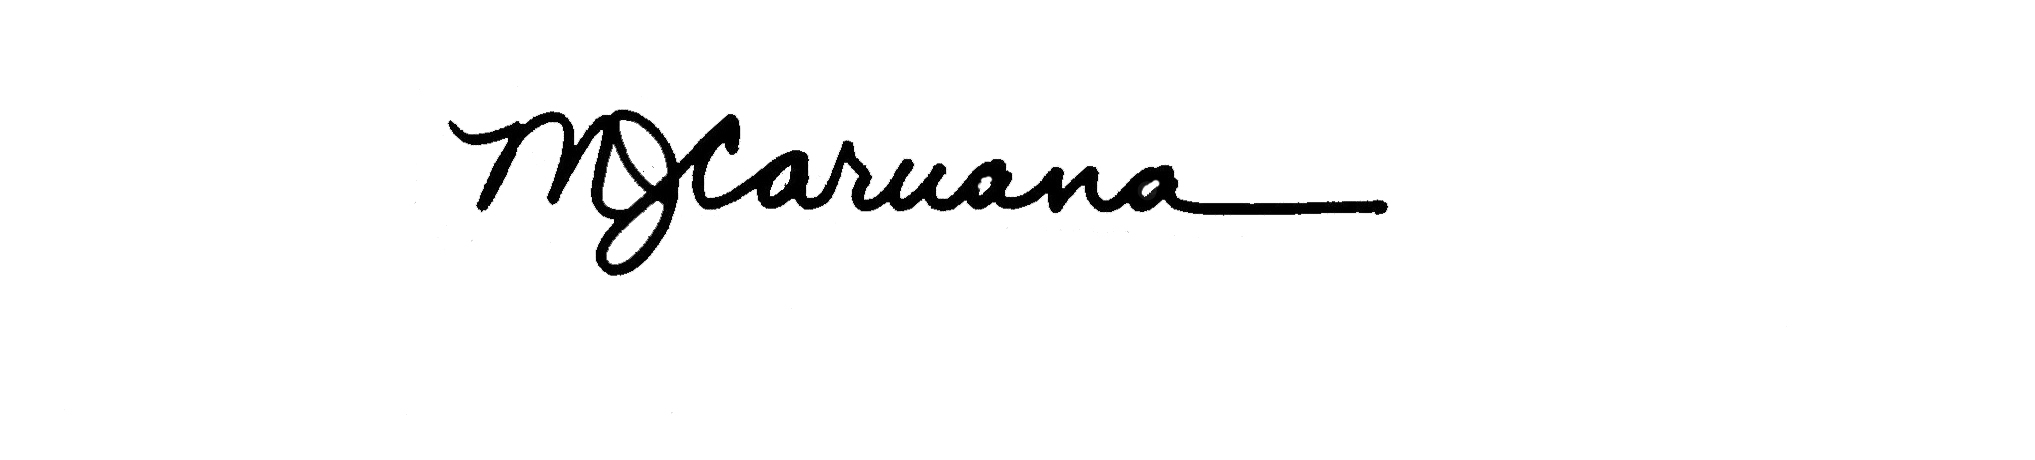 Mary Jo Caruana Signature